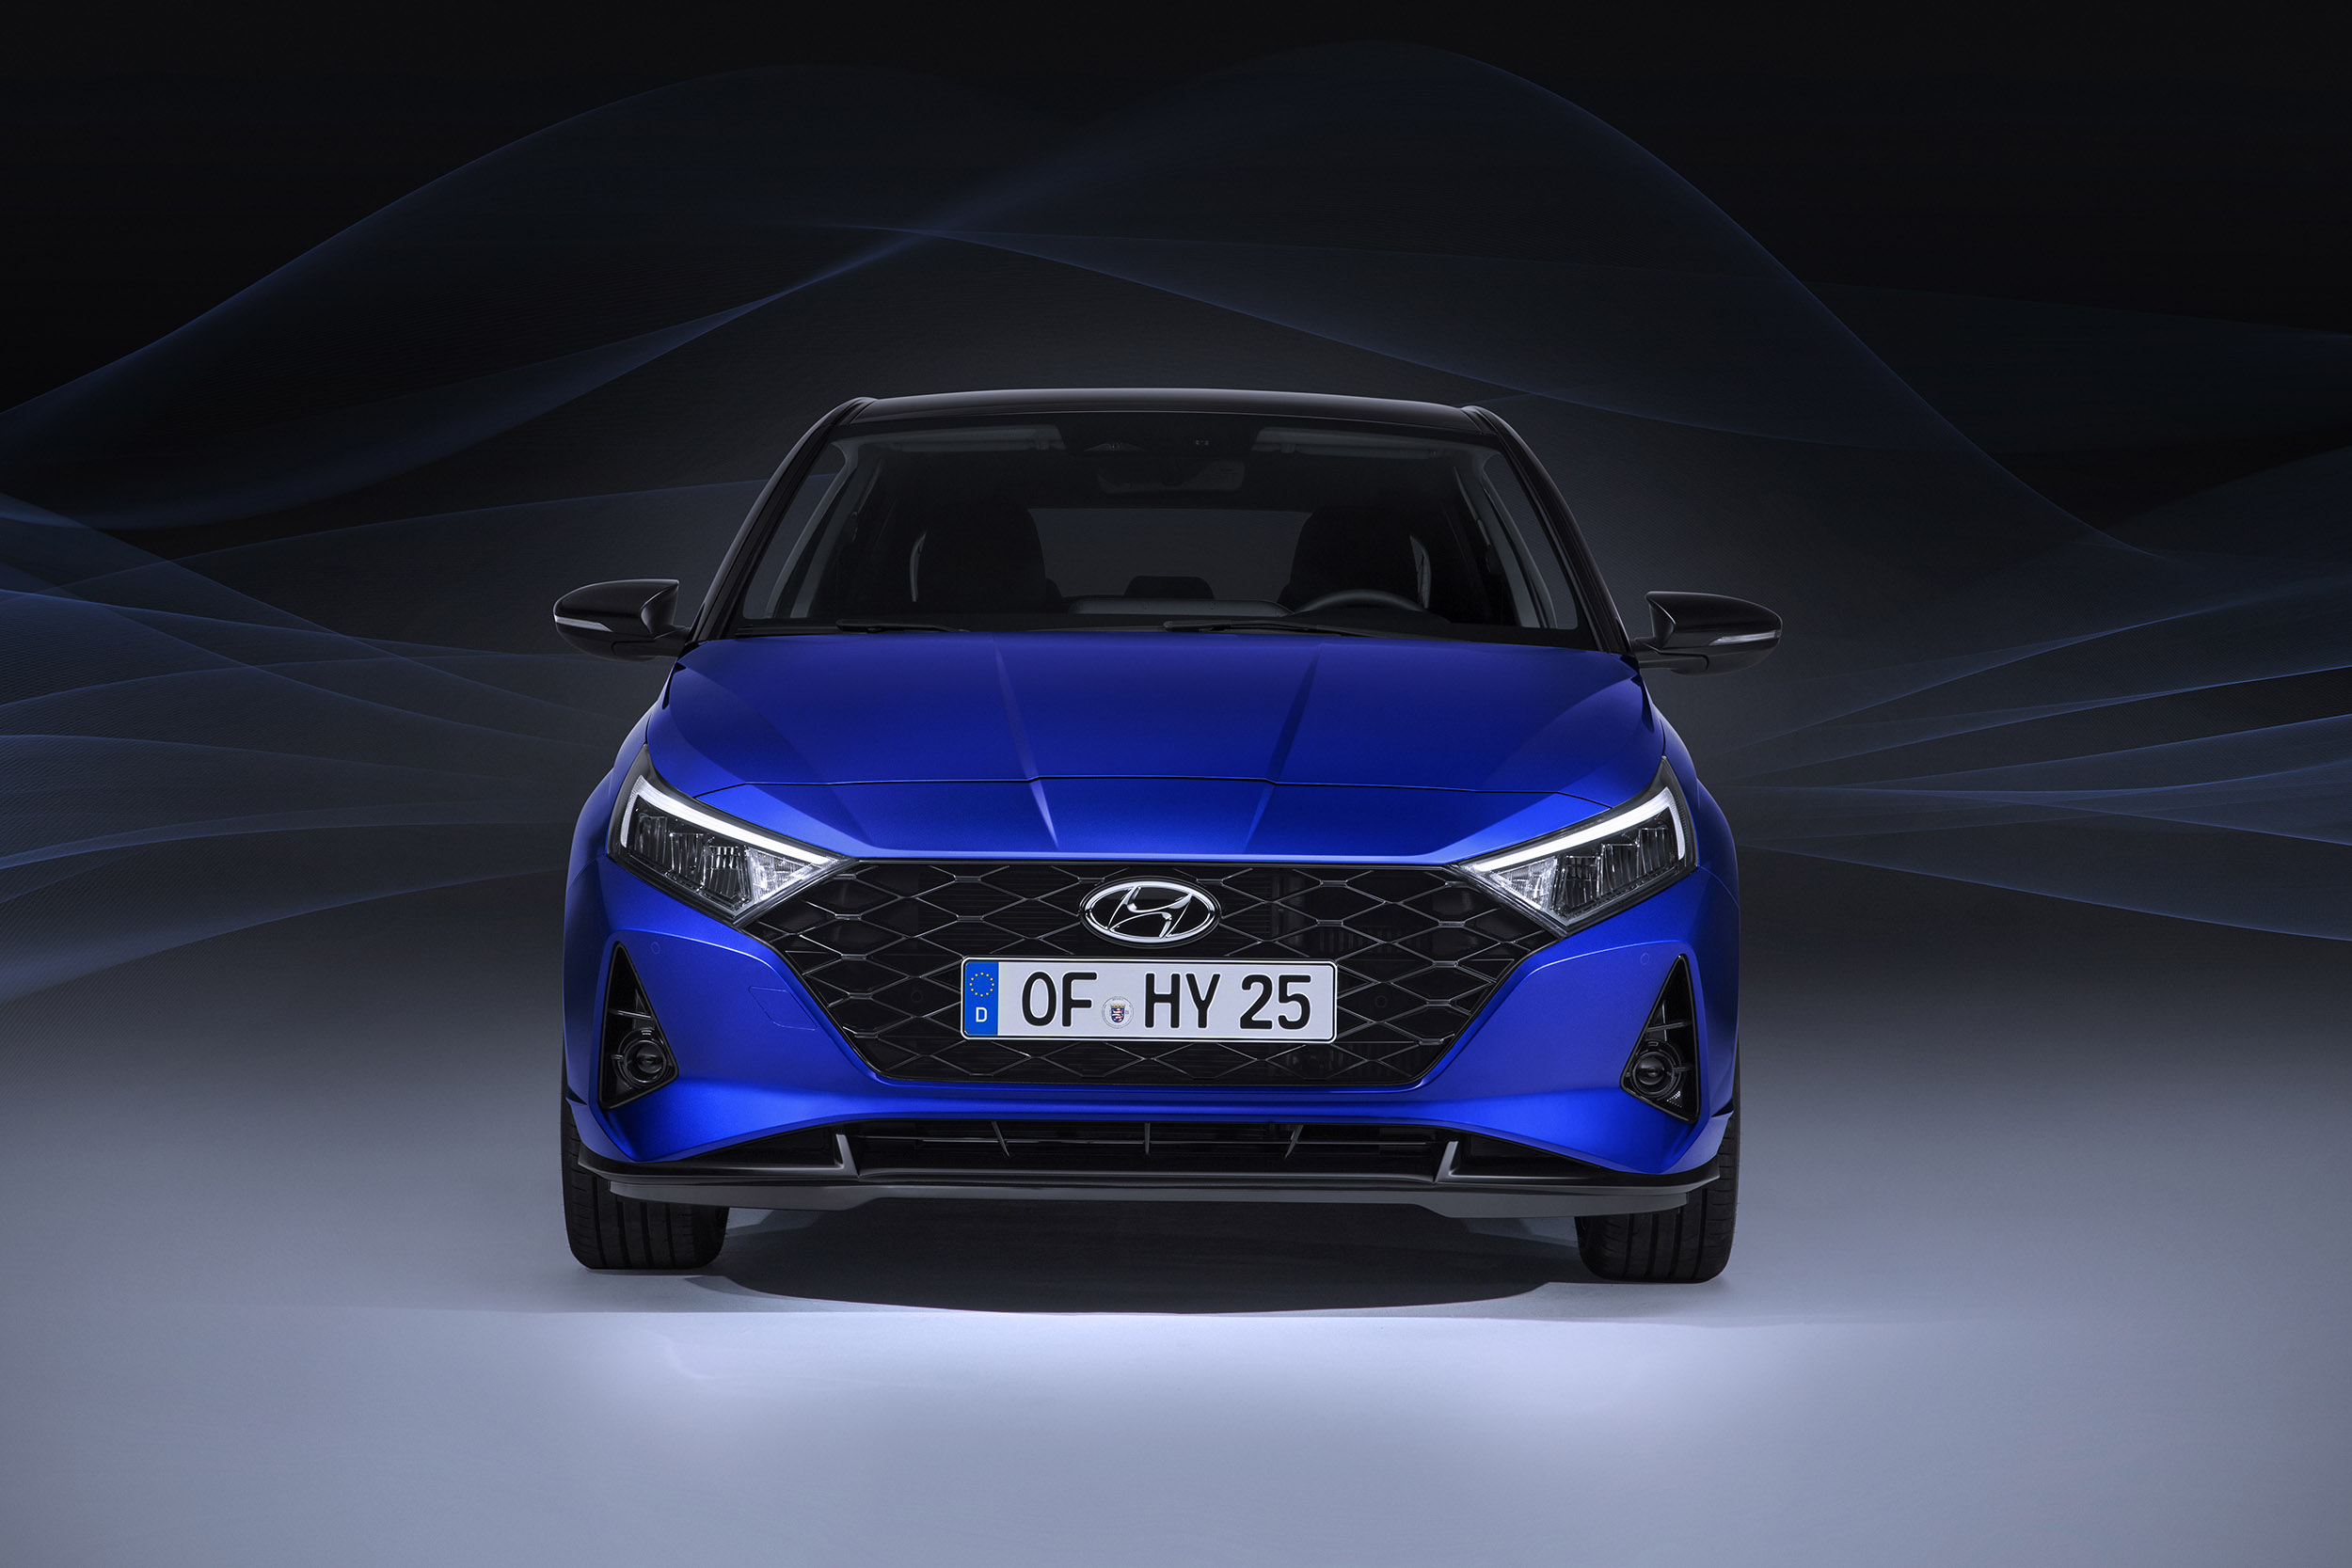 Rear view of the all-new Hyundai i20 on the road